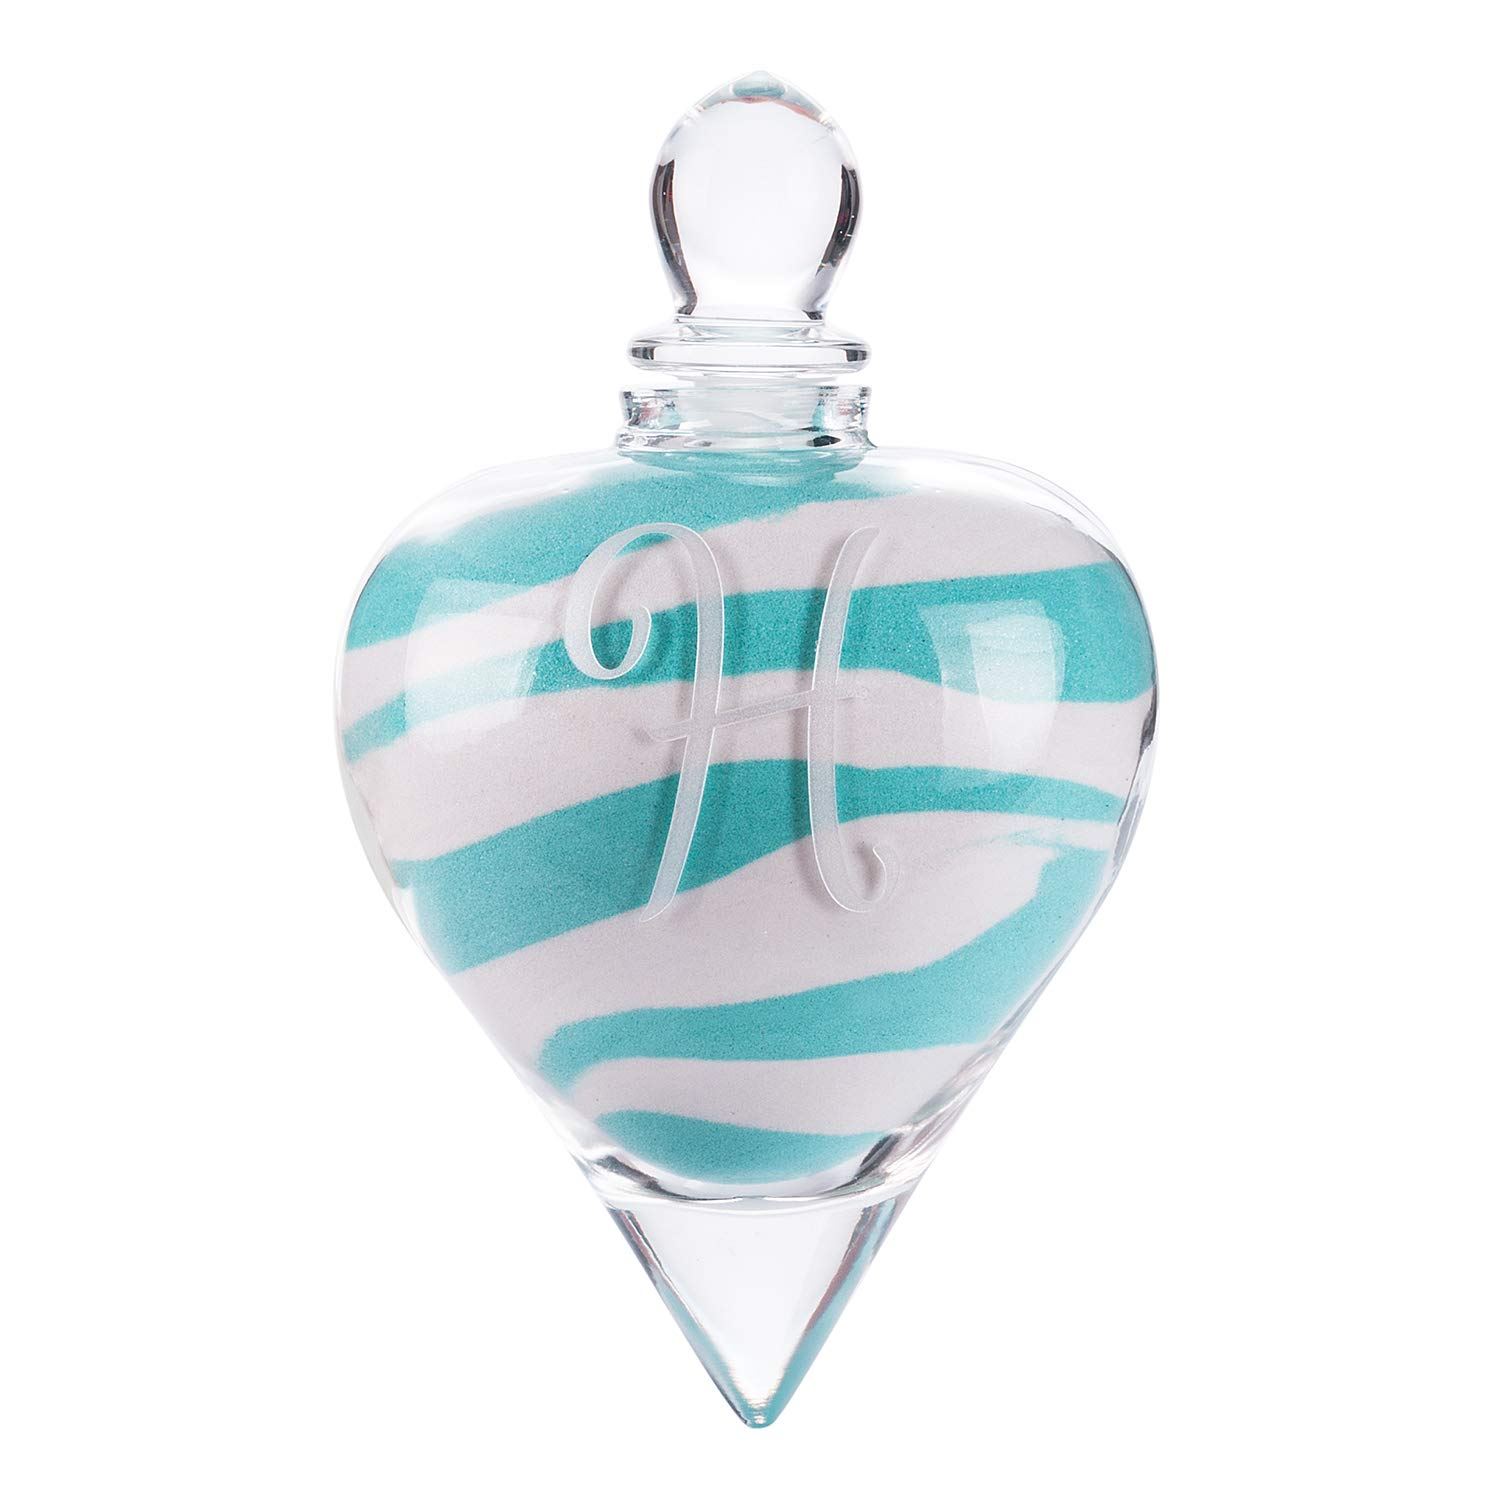 AF ANDREW FAMILY Monogrammed Etched Wedding Glass Heart Shaped Unity Set with Metal Stand Initial B White/& Blue Sand Included